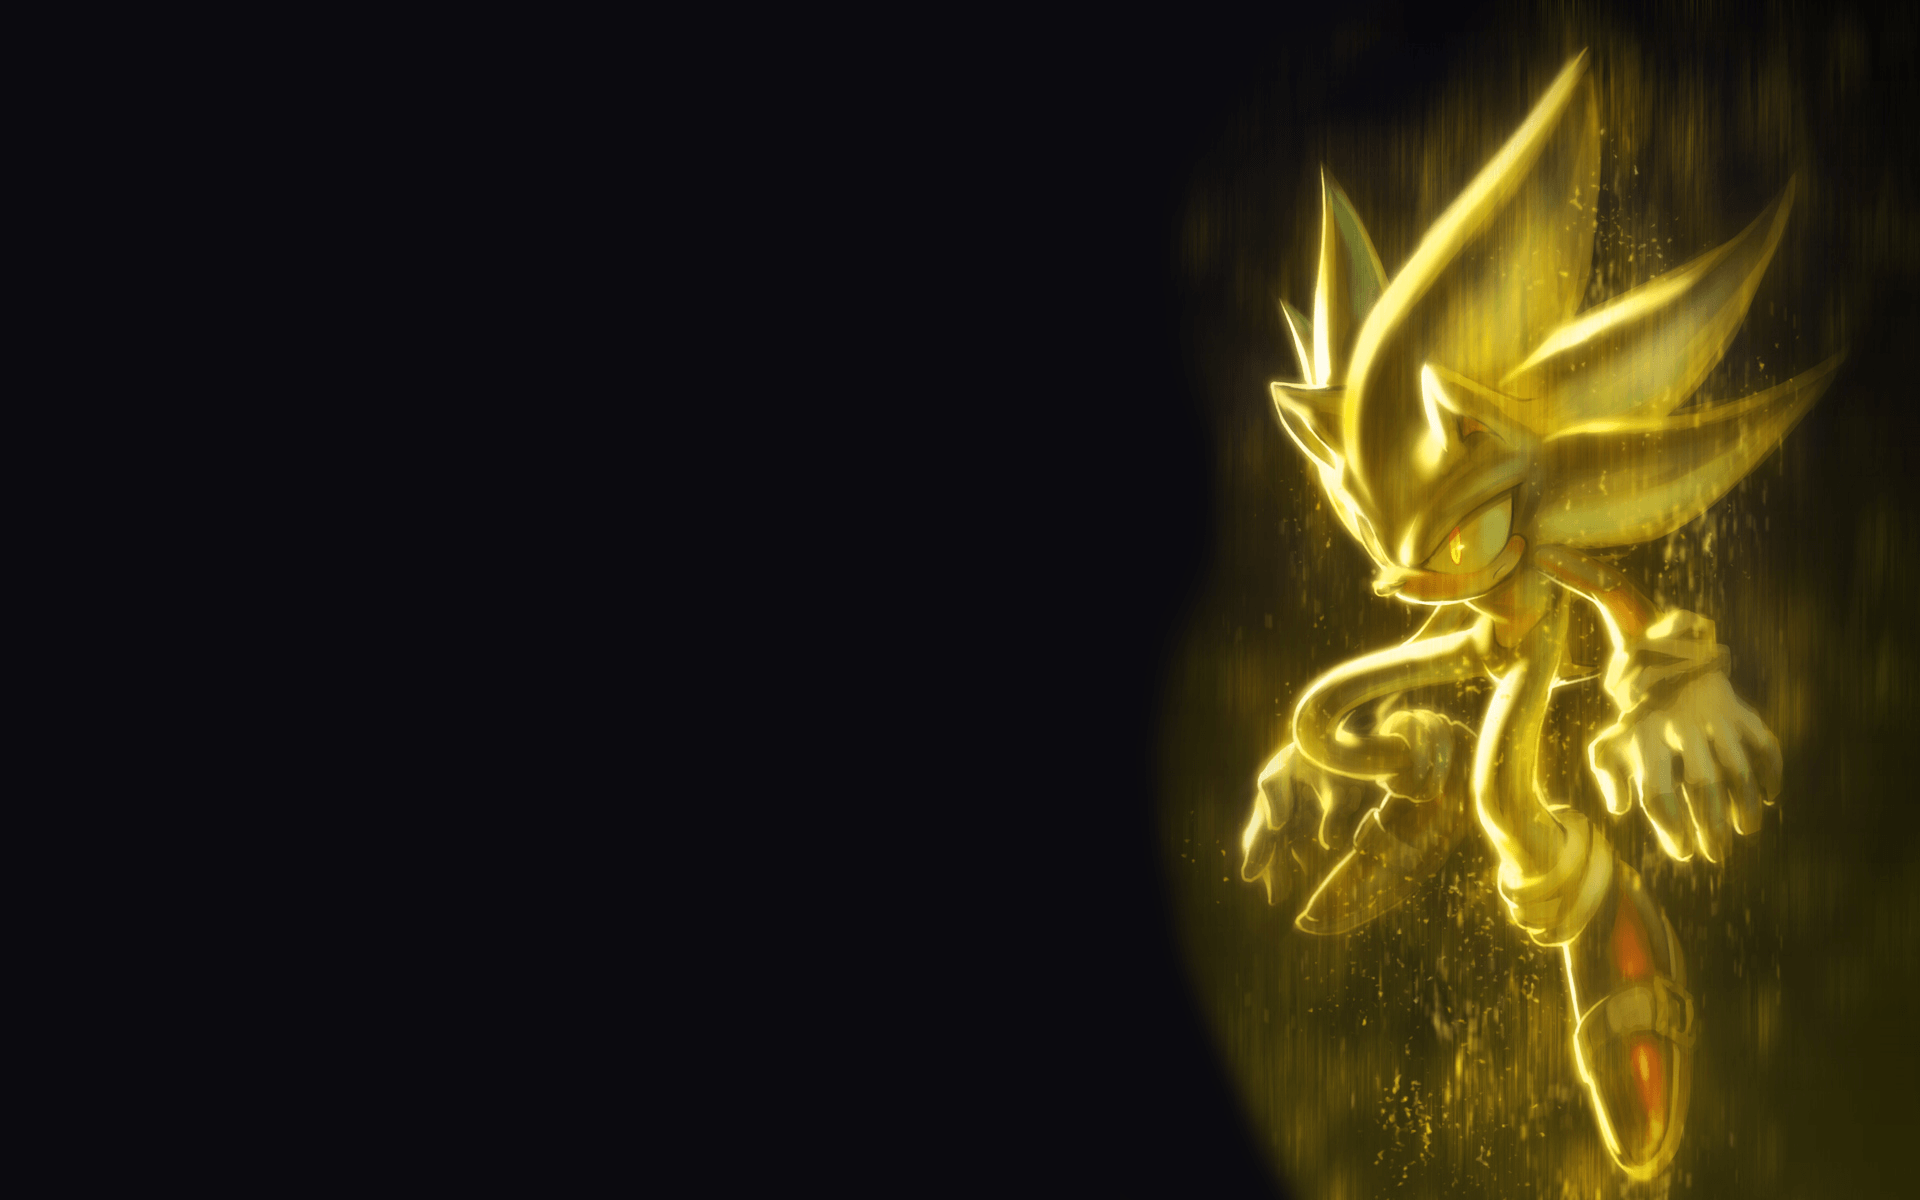 3d super sonic mobile phone backgrounds Images 3